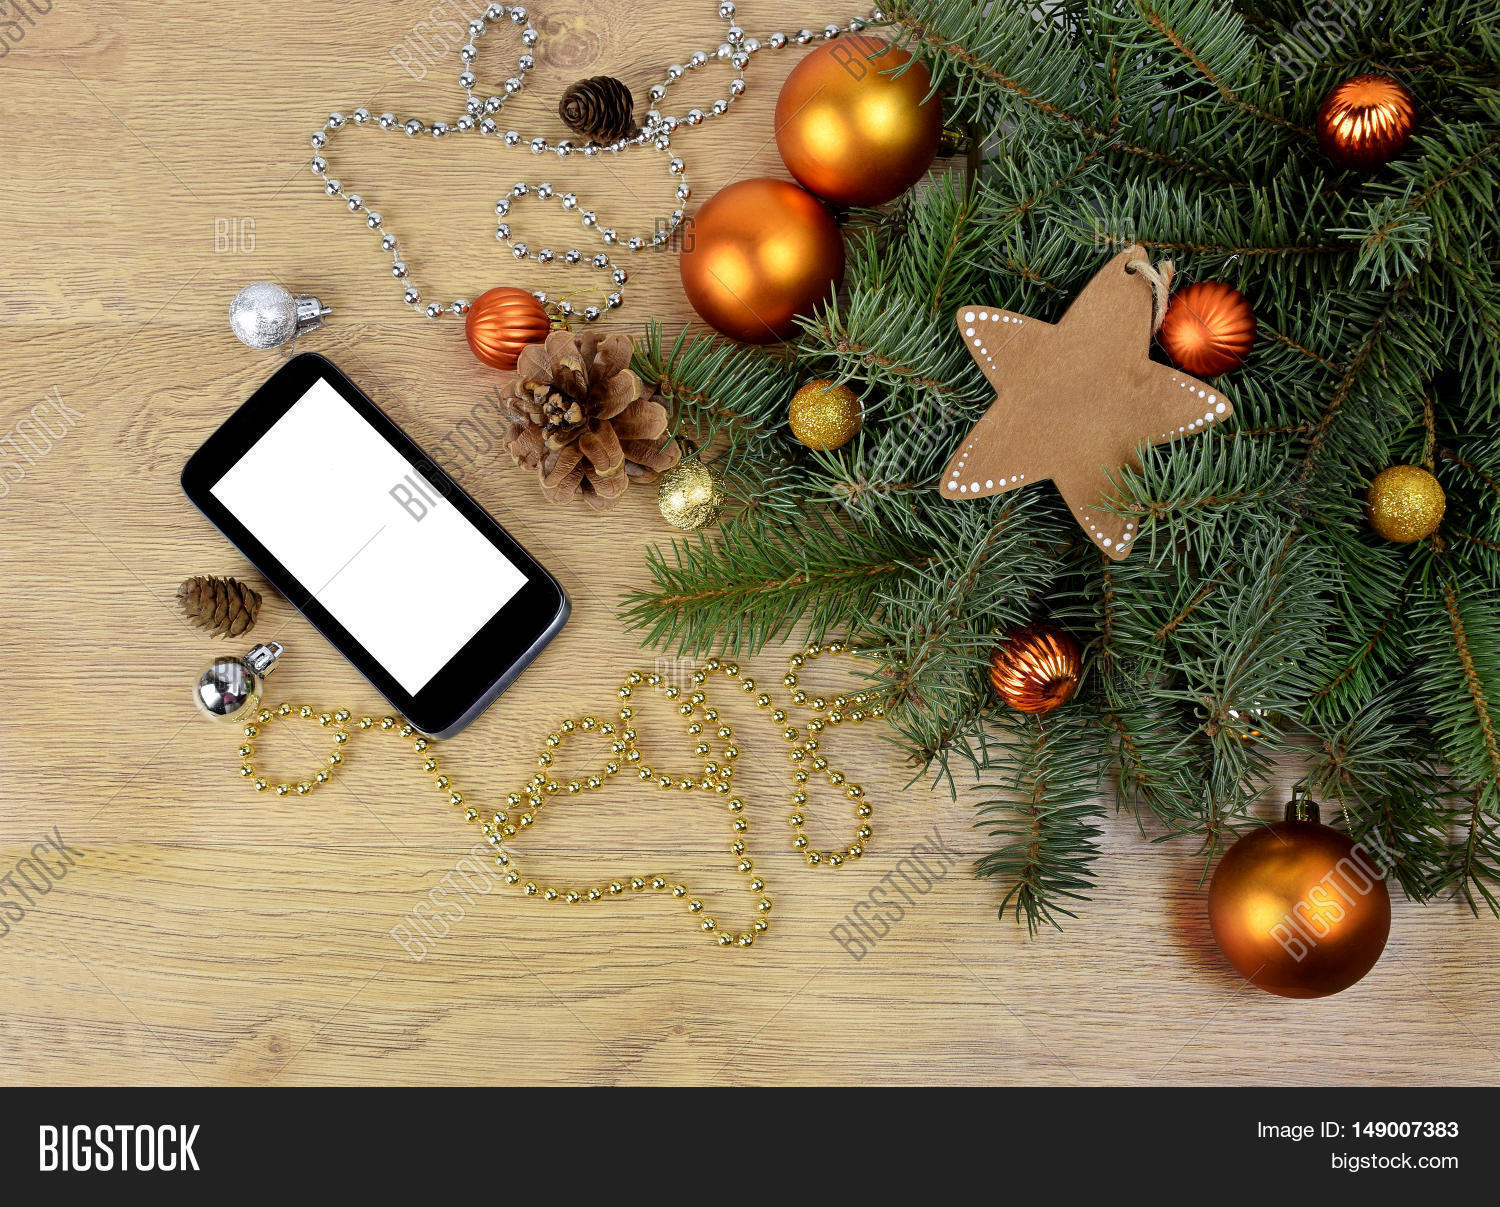 Festive Greetings Image & Photo (Free Trial) | Bigstock